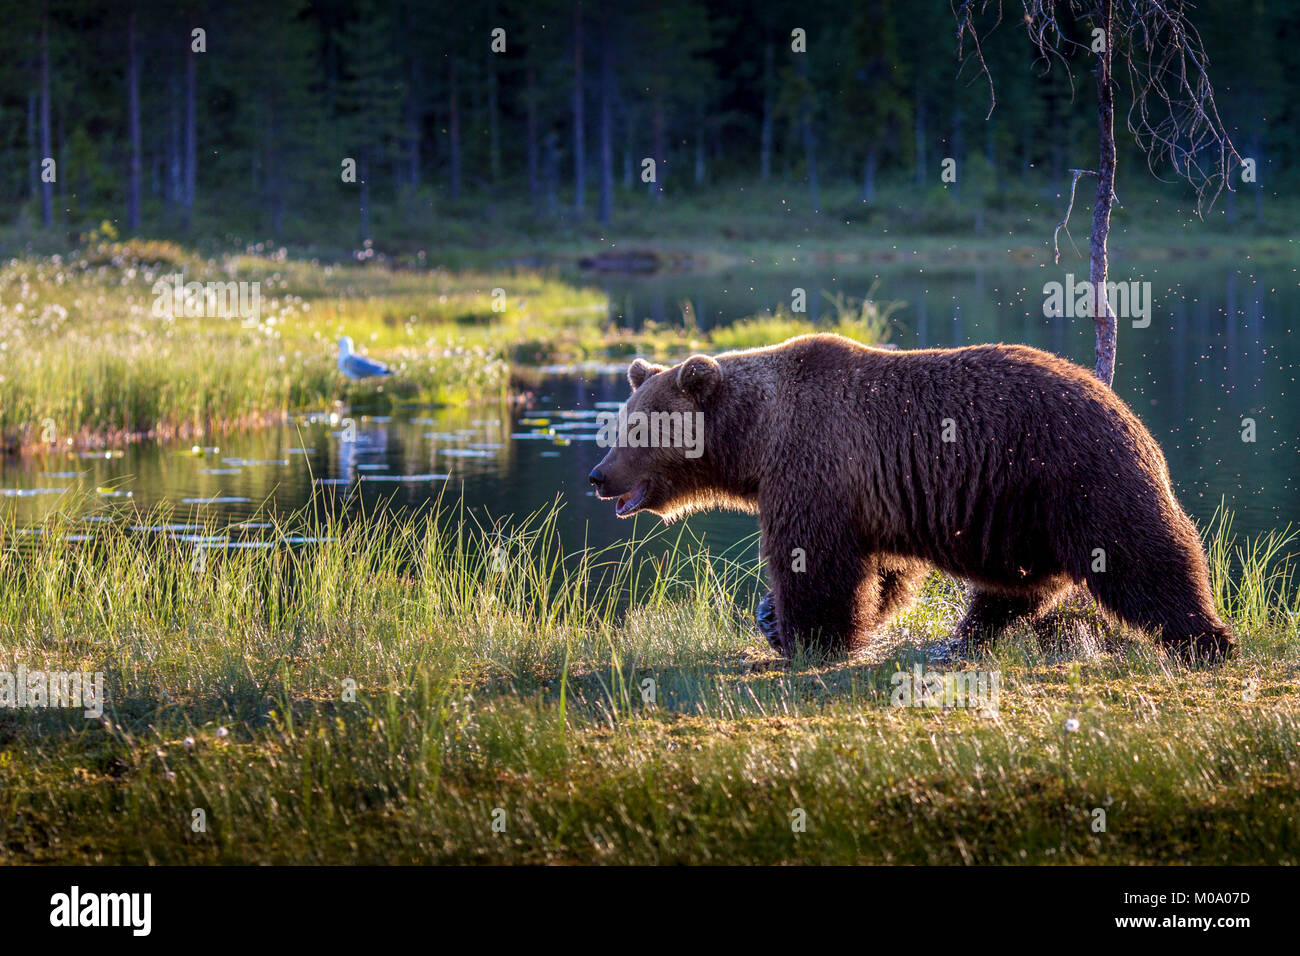 A wild male brown bear in Finland. - Stock Image